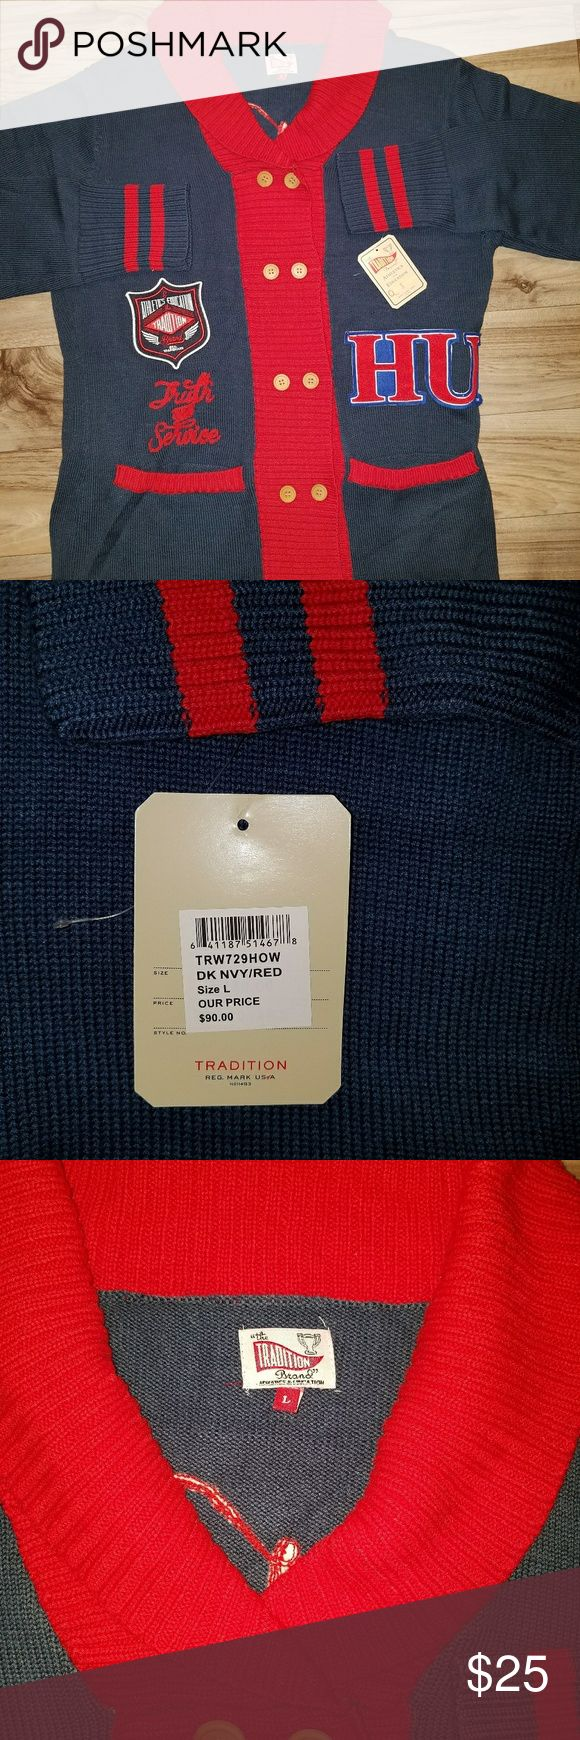 """Men's Cardigan sweater. """"Traditions""""  brand. Thick soft cable knit. Nice quality made. traditions Sweaters Cardigan"""